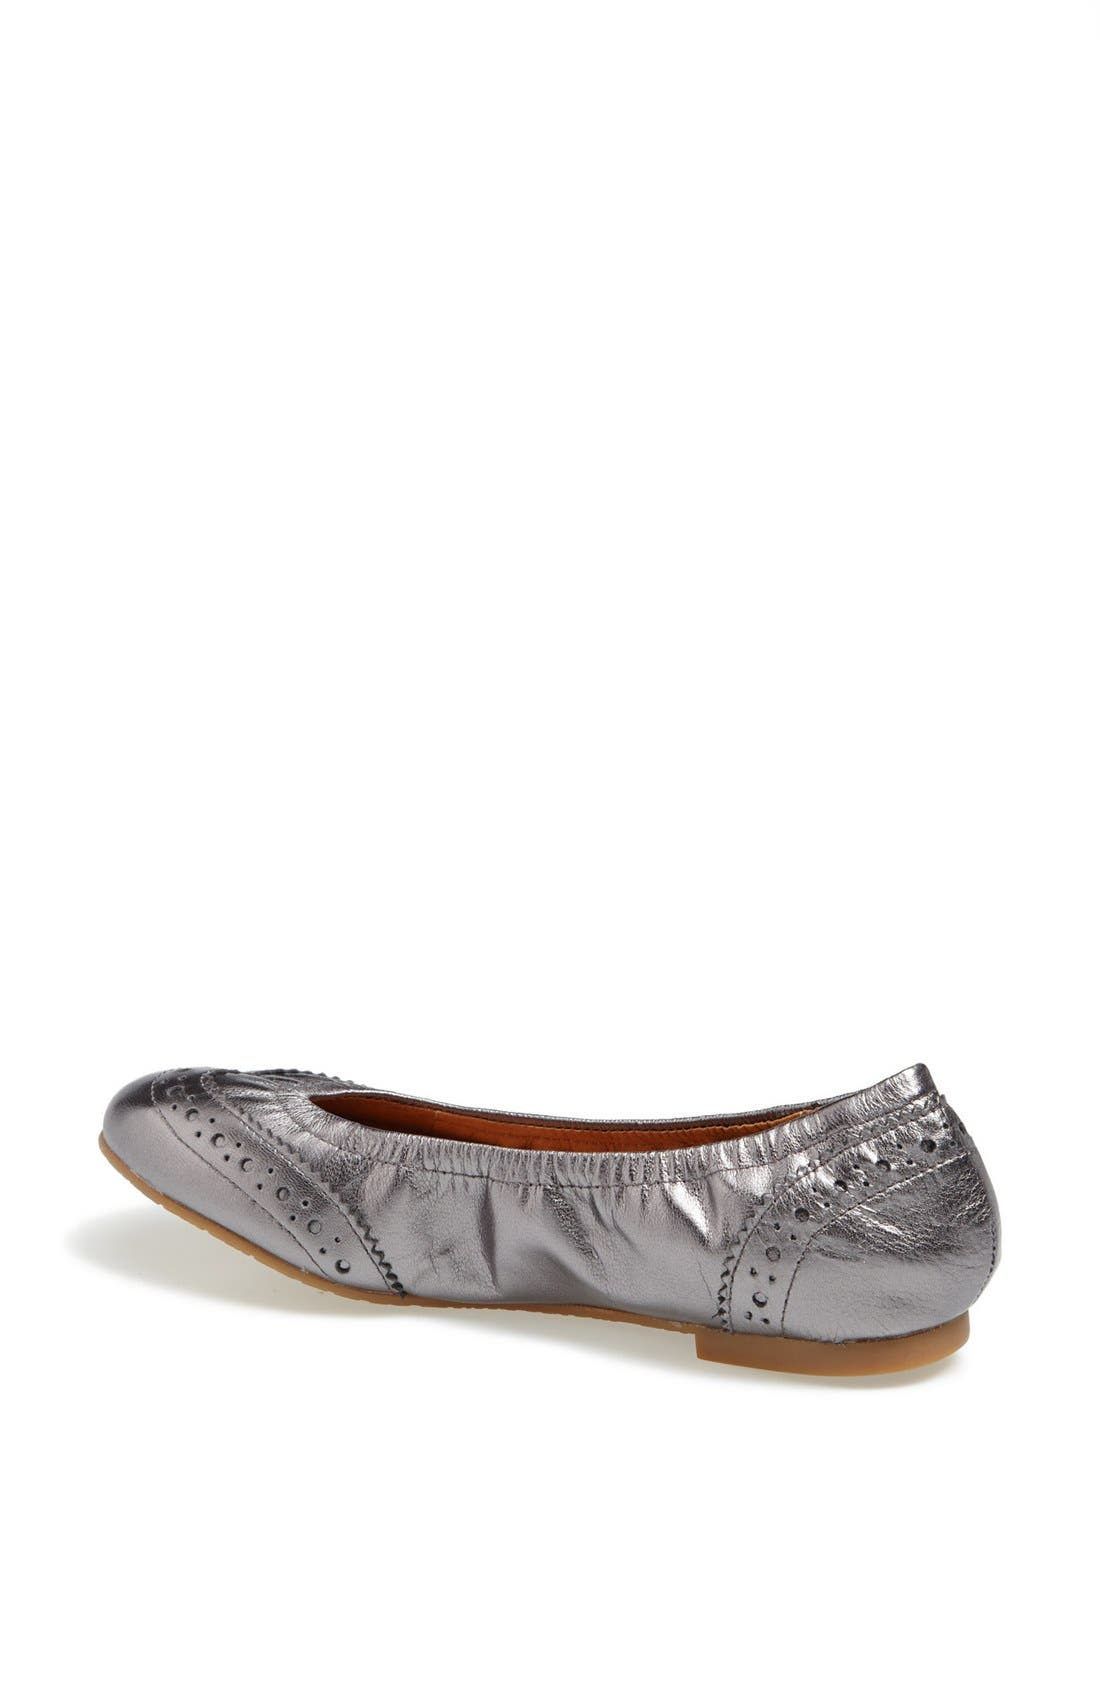 Alternate Image 2  - Juil 'The Wing Tip' Copper Grounded Metallic Leather Flat